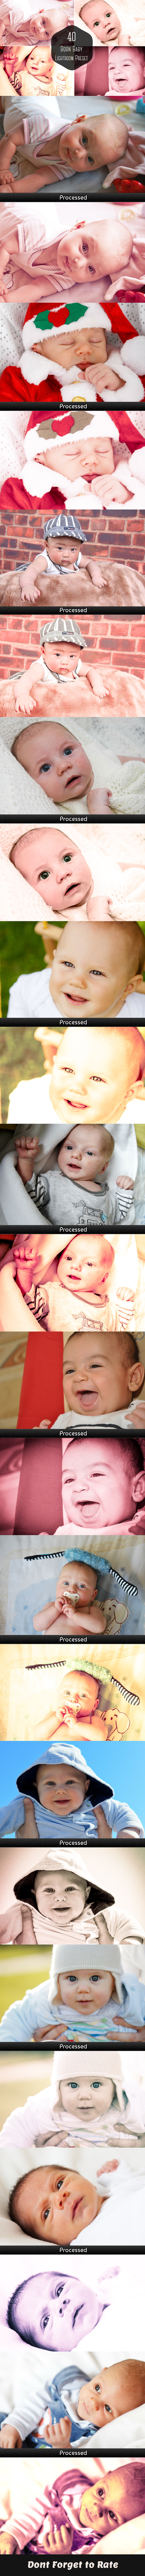 40 Born Baby Pro Lightroom 4 and 5 Presets